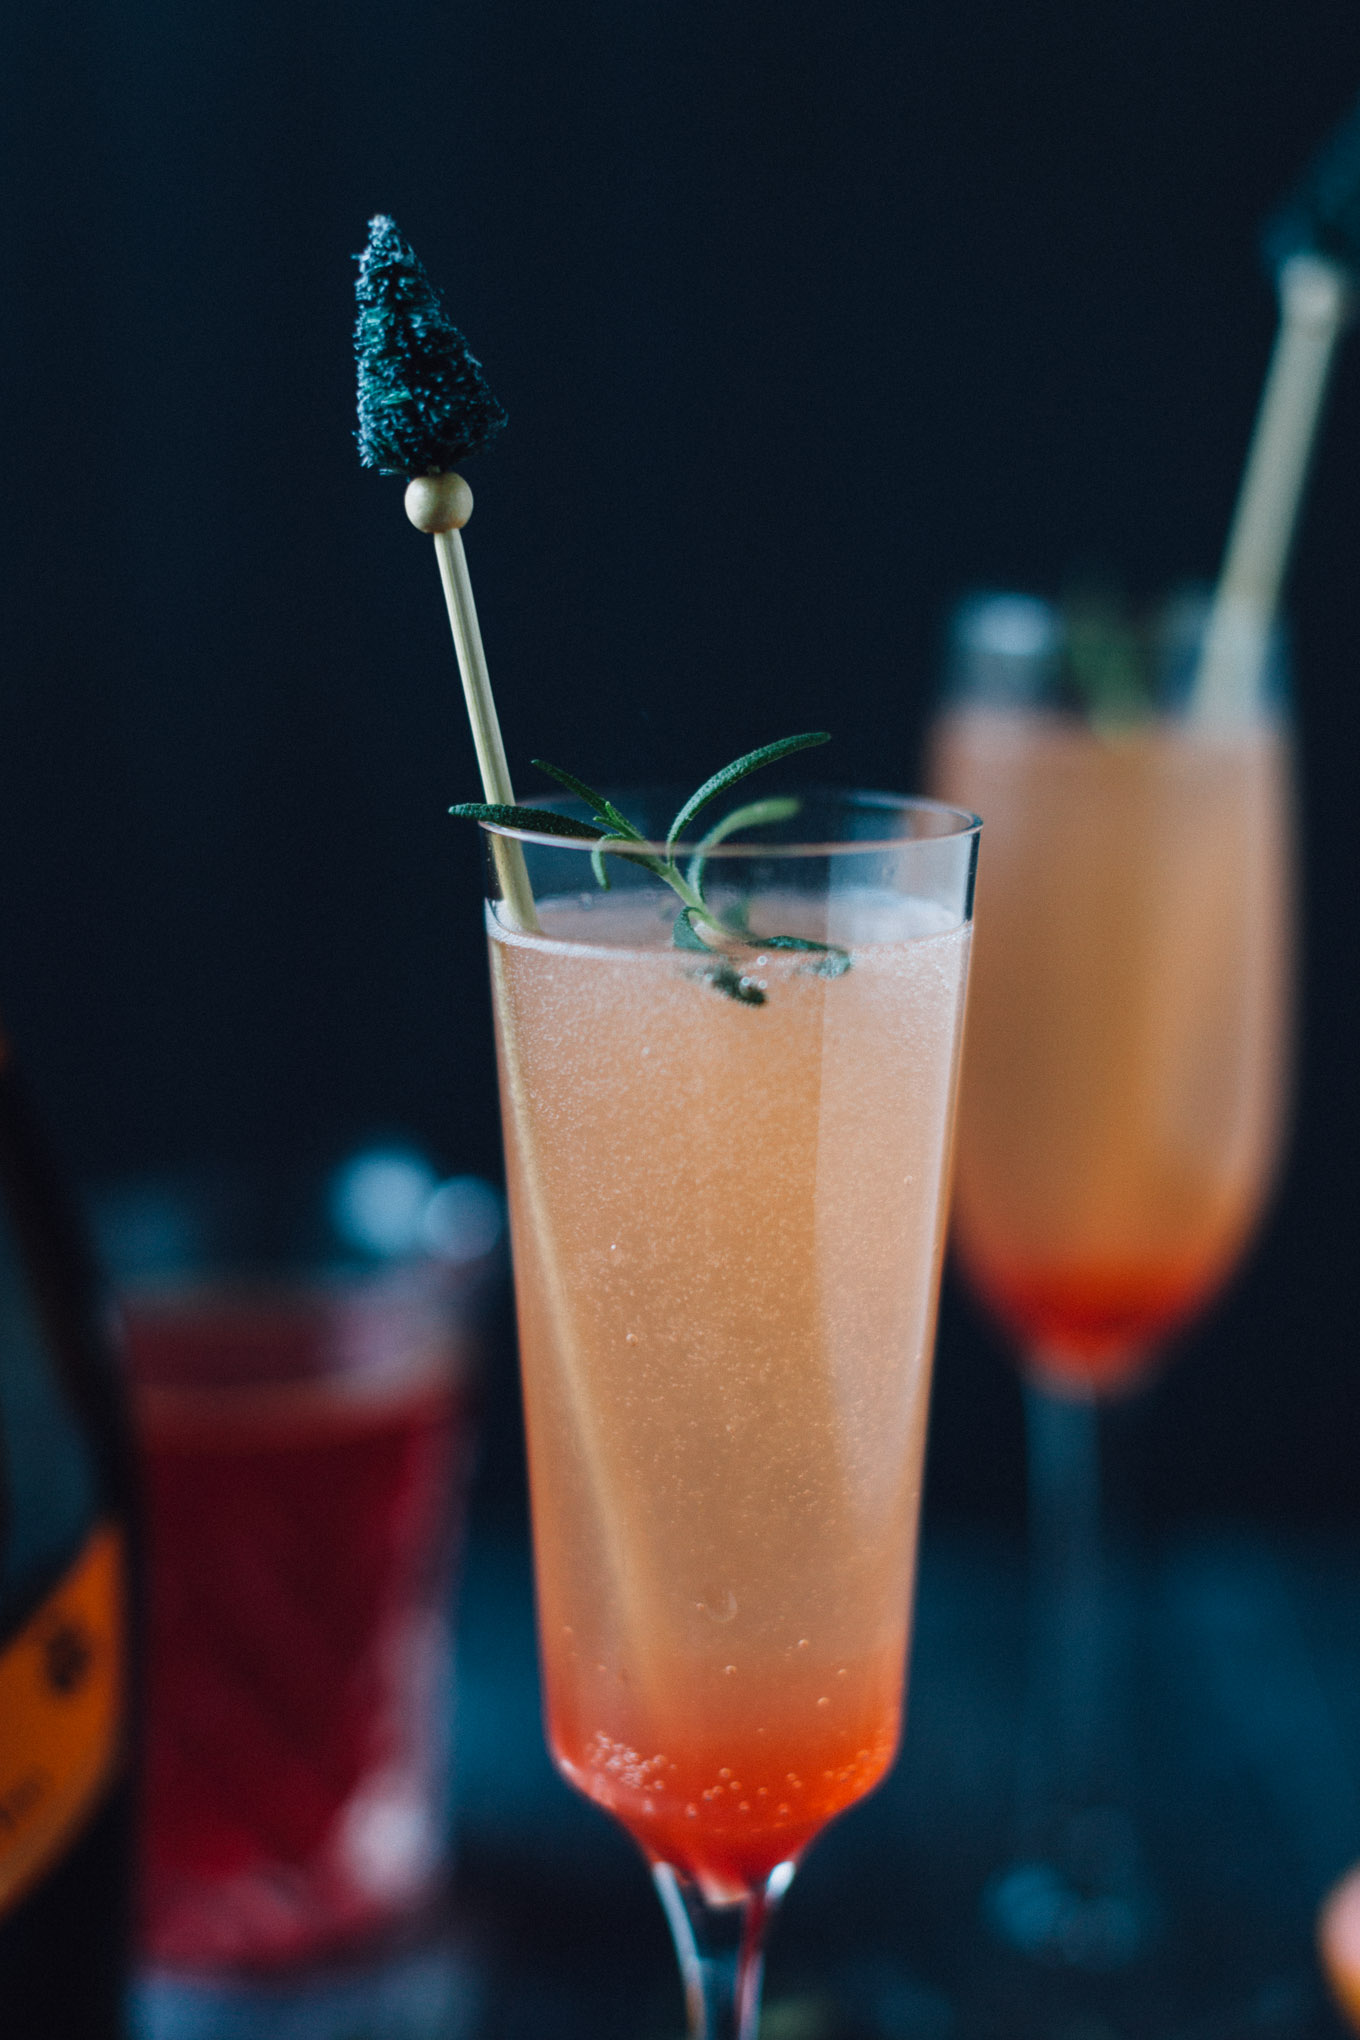 Blood Orange and Rosemary Sparkling Cocktails | Alyssa & Carla